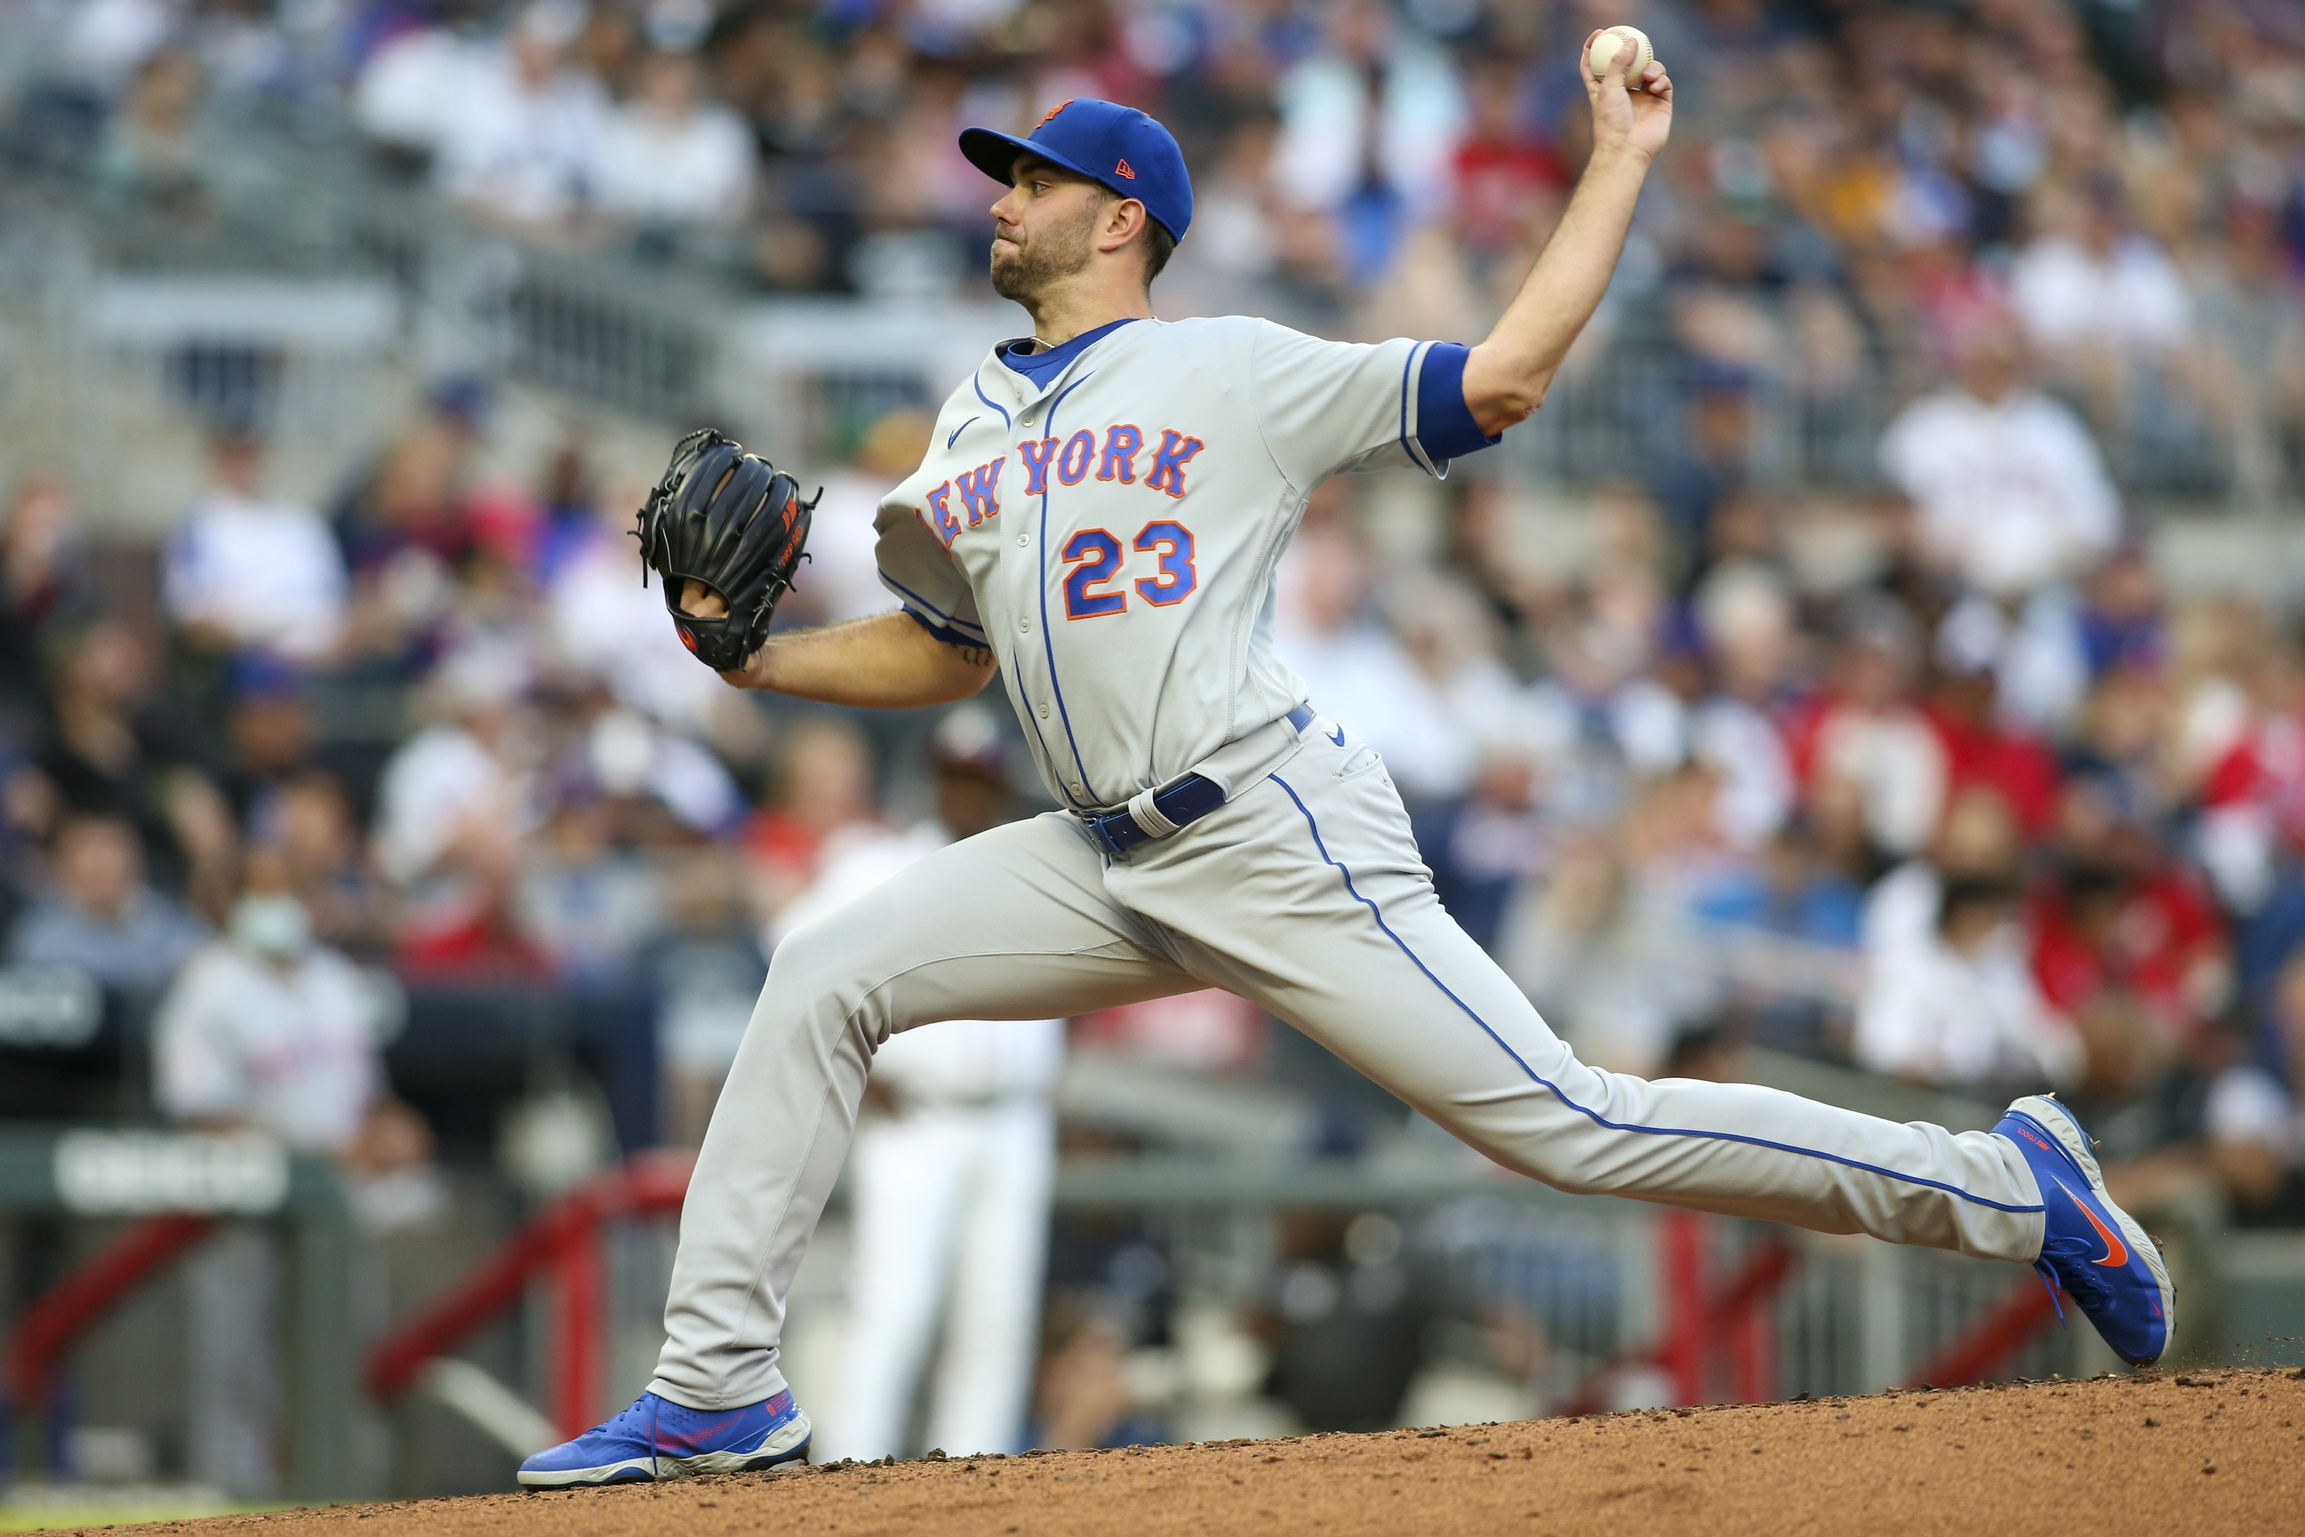 Mets Fail to Sweep Braves, Lose 5-4 in Walk-Off Fashion